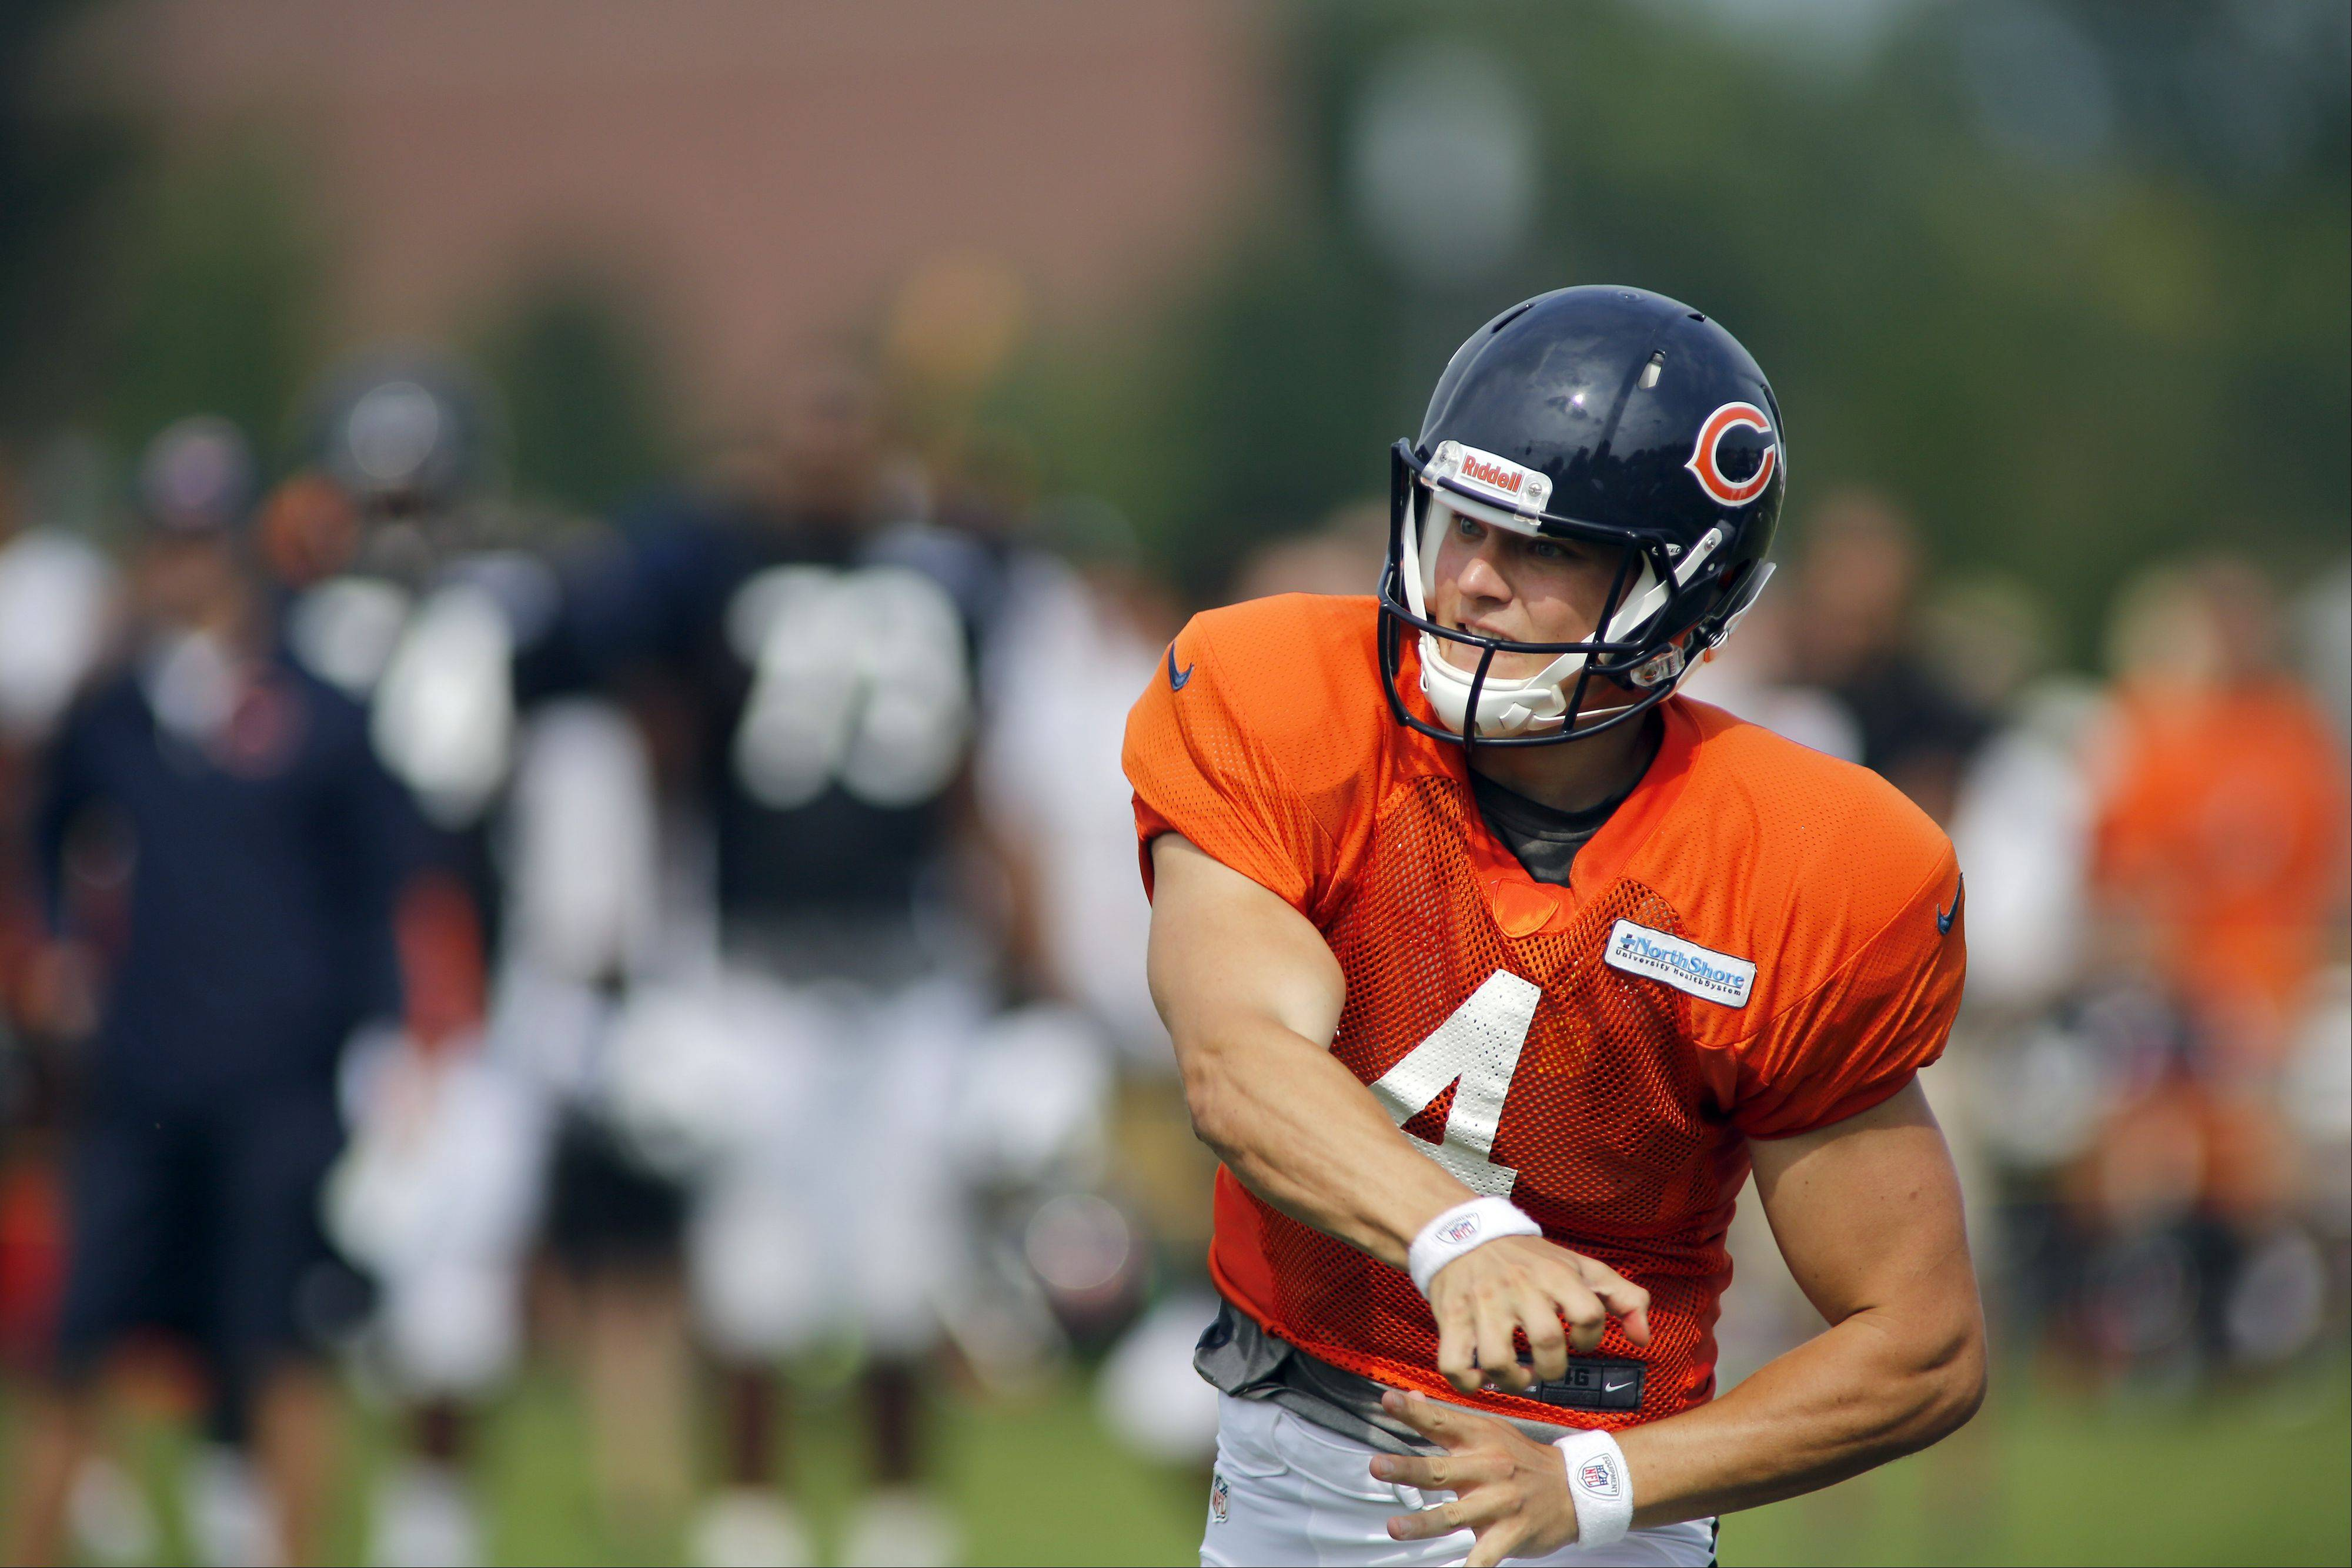 Chicago Bears and quarterback Matt Blanchard reached an injury settlement, allowing the team to reach its 75-man roster cut before Thursday's final preseason game. Blanchard, a former Lake Zurich High School star, is free to sign with another team.